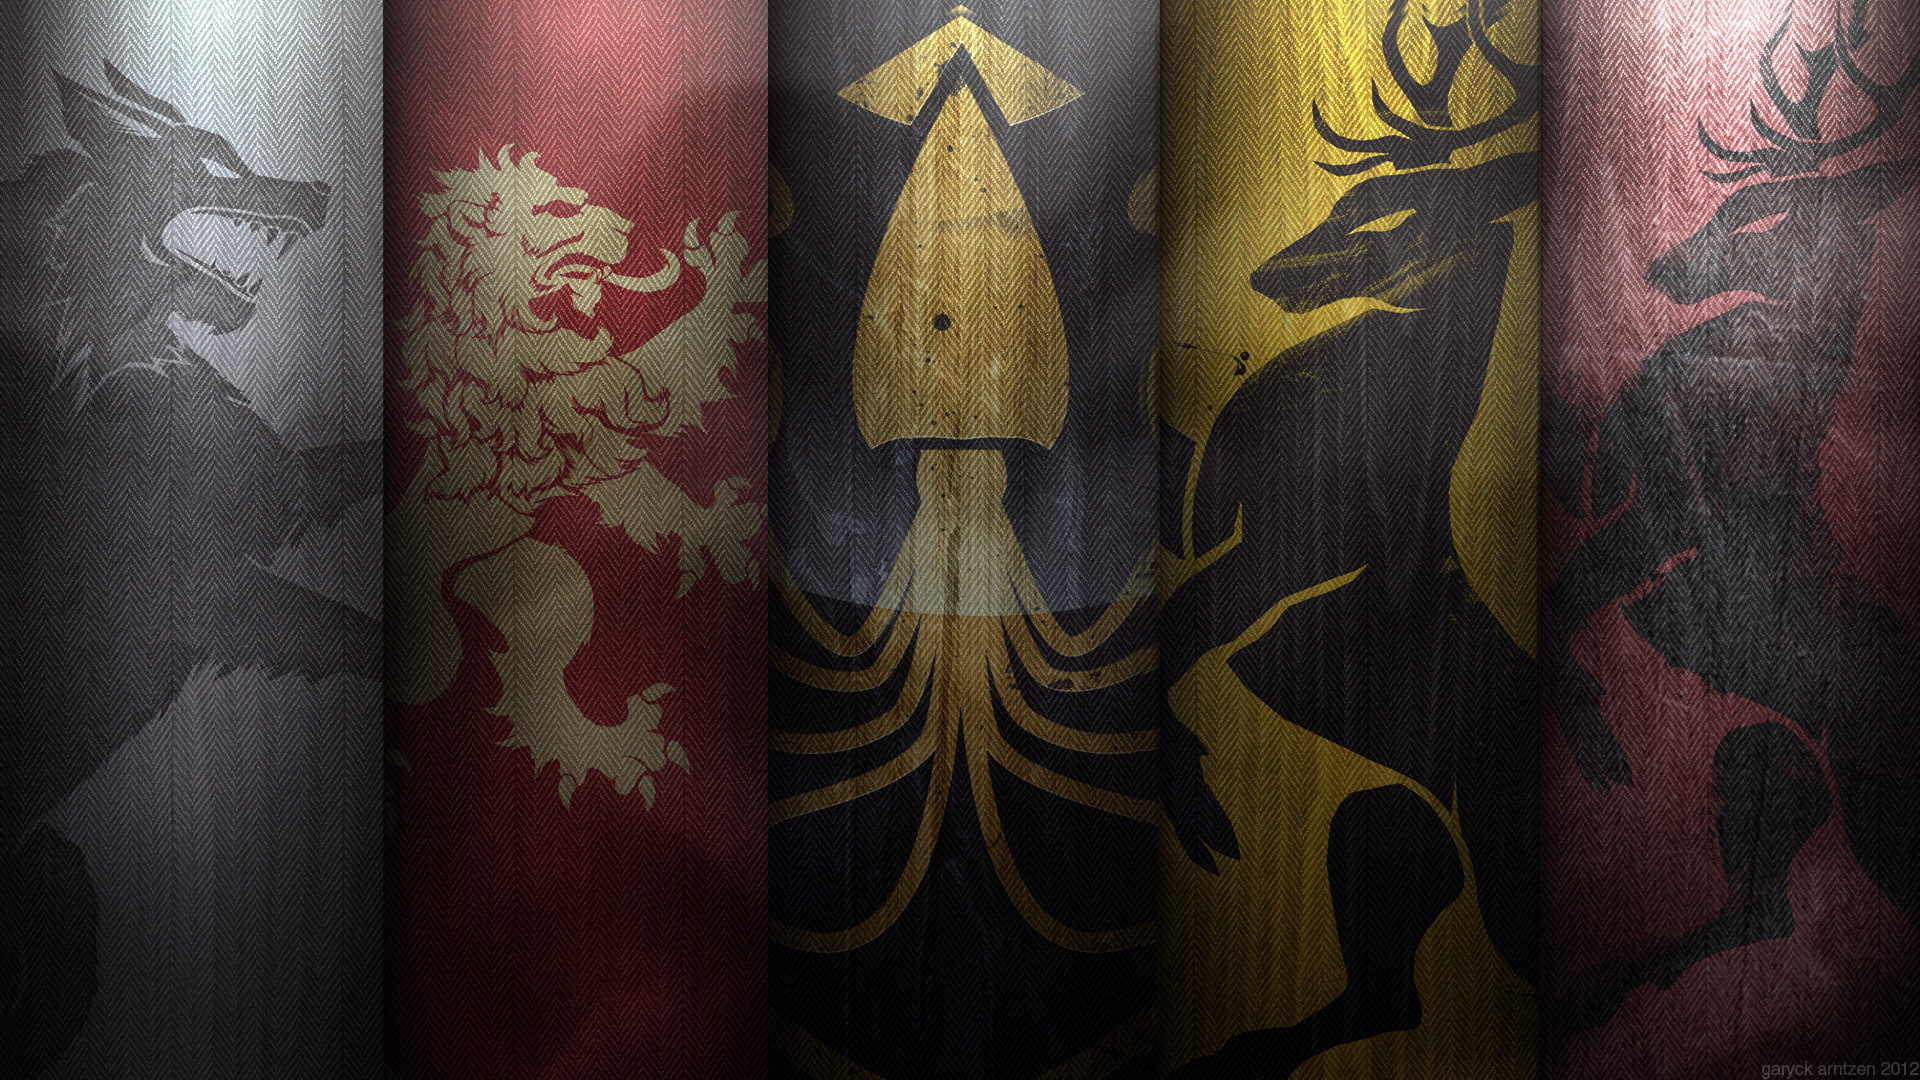 Game Of Thrones Hd Wallpapers Iphone Pc Download Free - Game Of Thrones Baratheon Sigil - HD Wallpaper